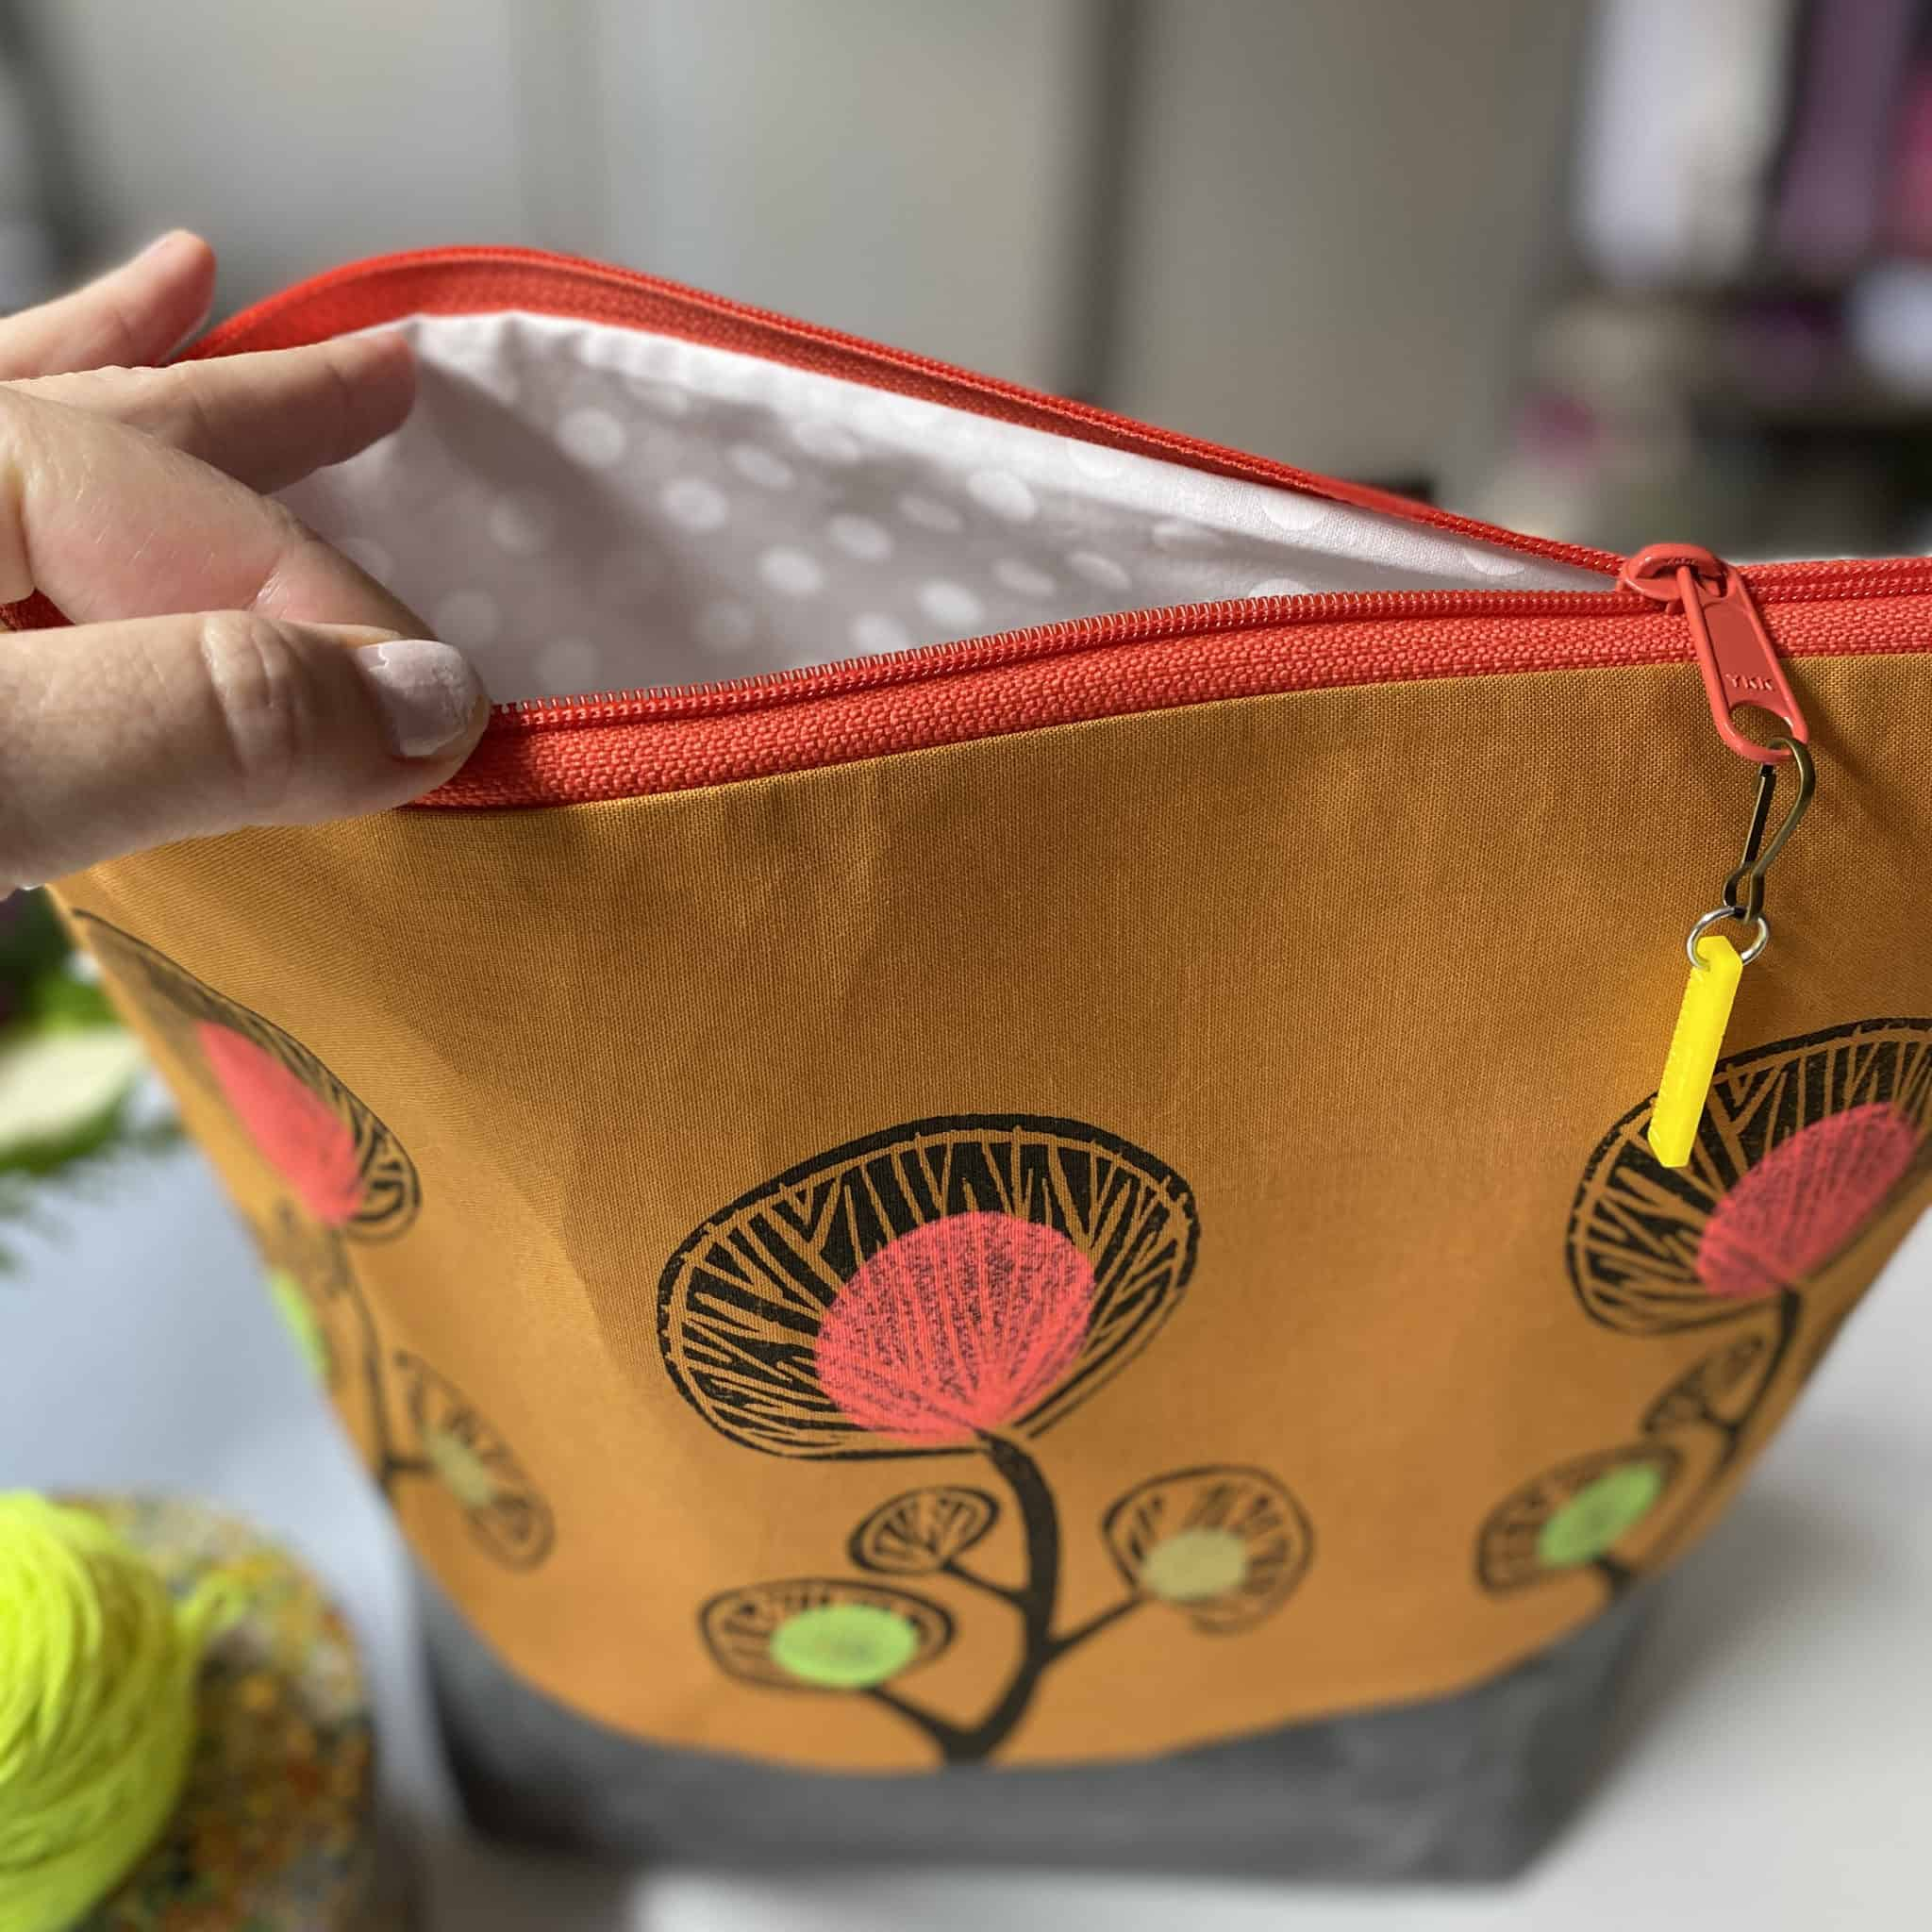 A gold zippered bag with flowers.